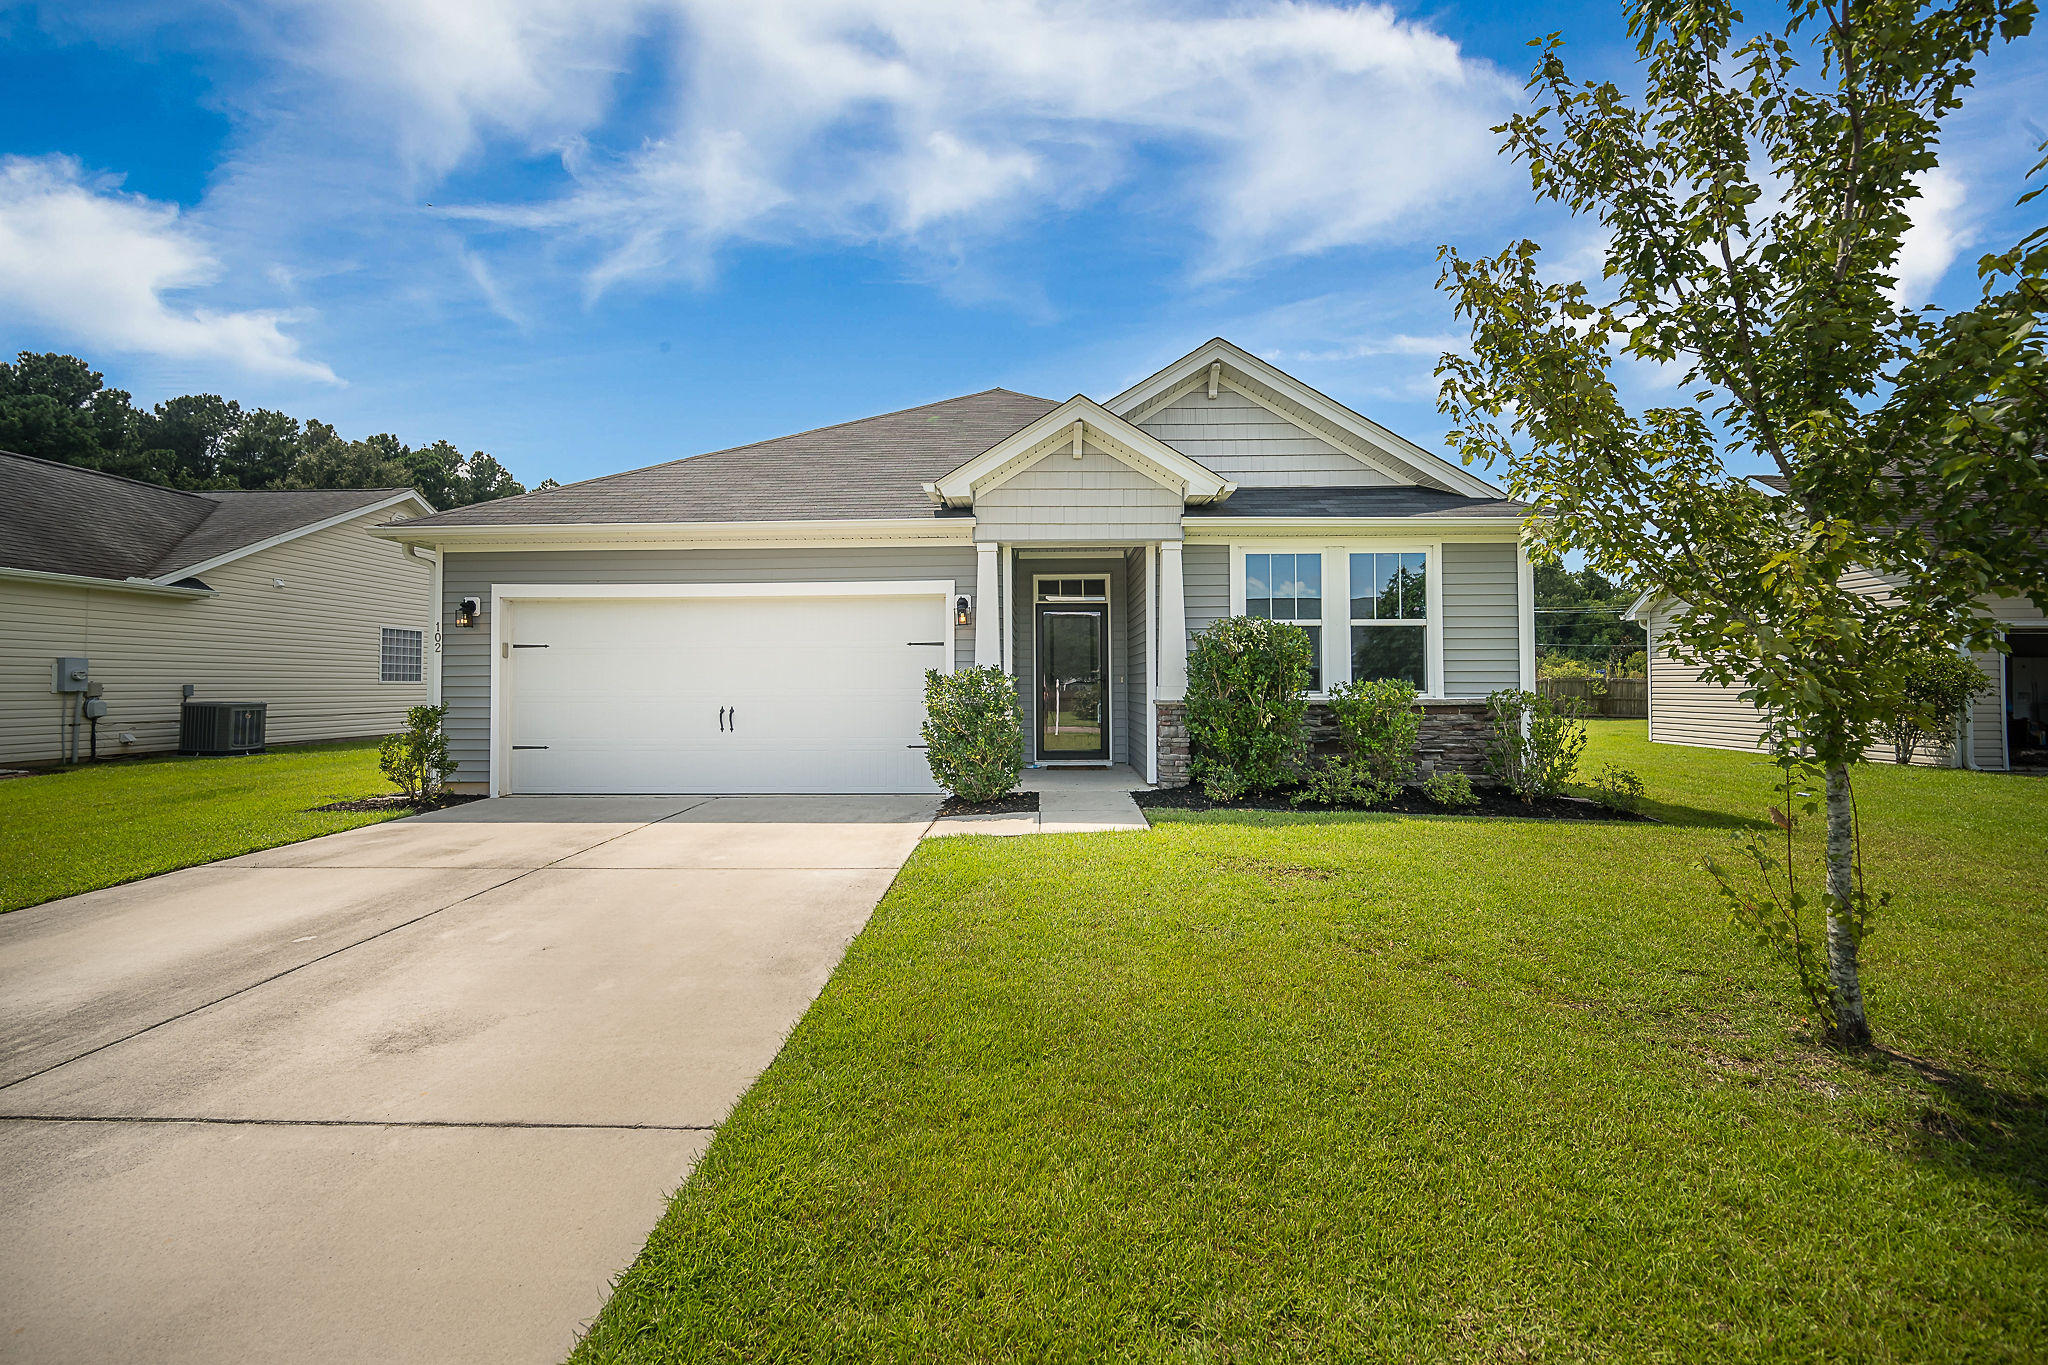 Montague Pointe Homes For Sale - 102 Gavins, Goose Creek, SC - 21